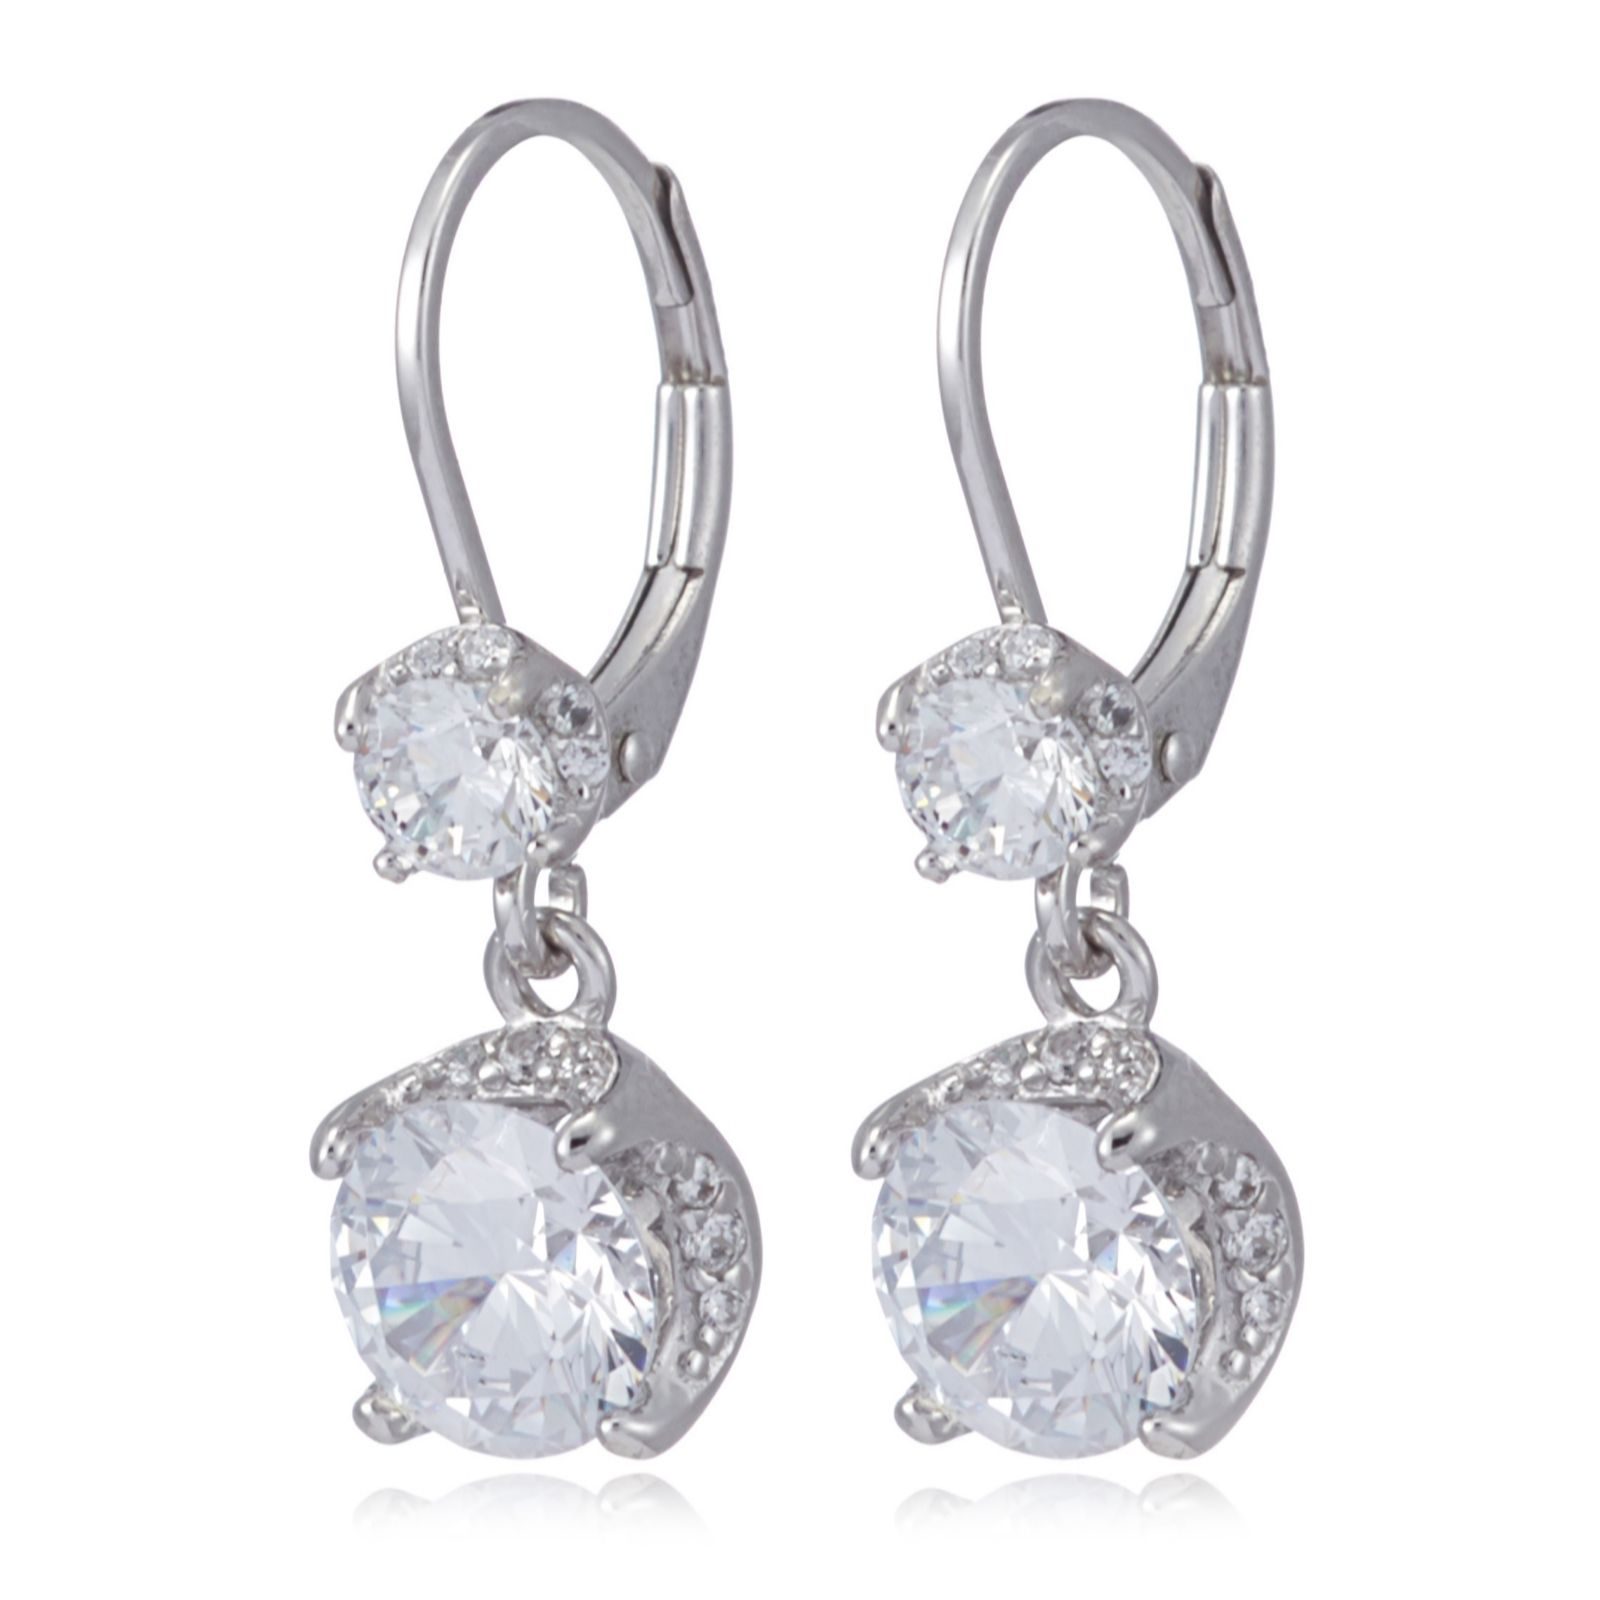 Glitz Glam Blue Diamontrigue Jewelry: Diamonique 3.7ct Tw Ultimate Glamour Leverback Earrings